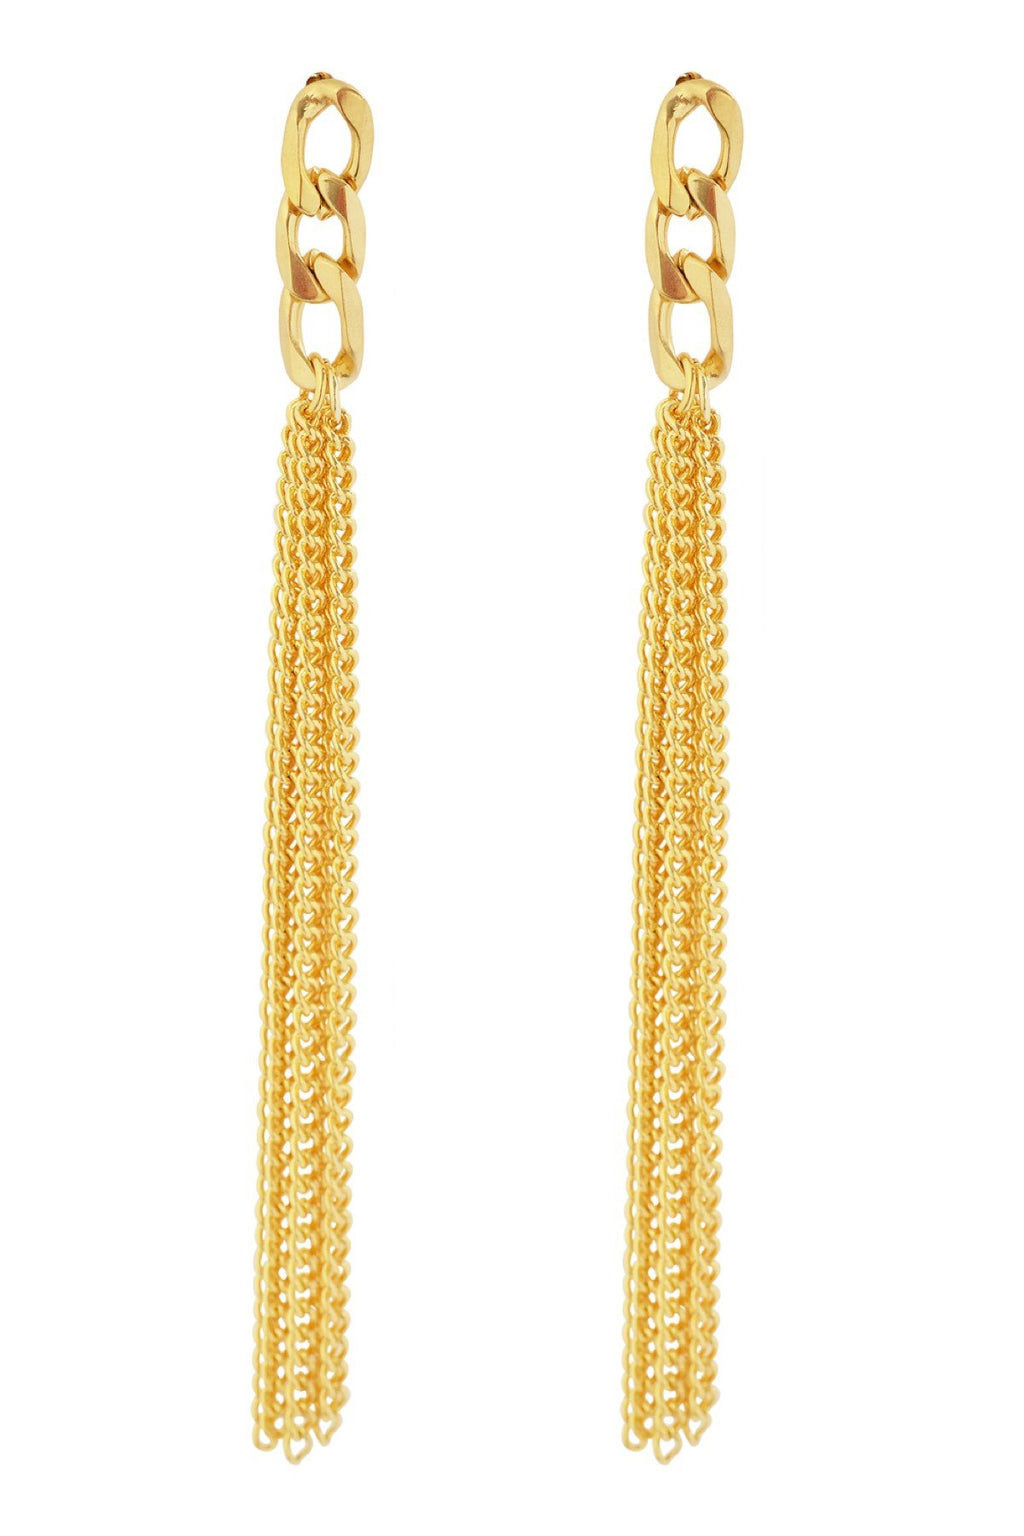 18K Gold Chain Fringe Long Earrings